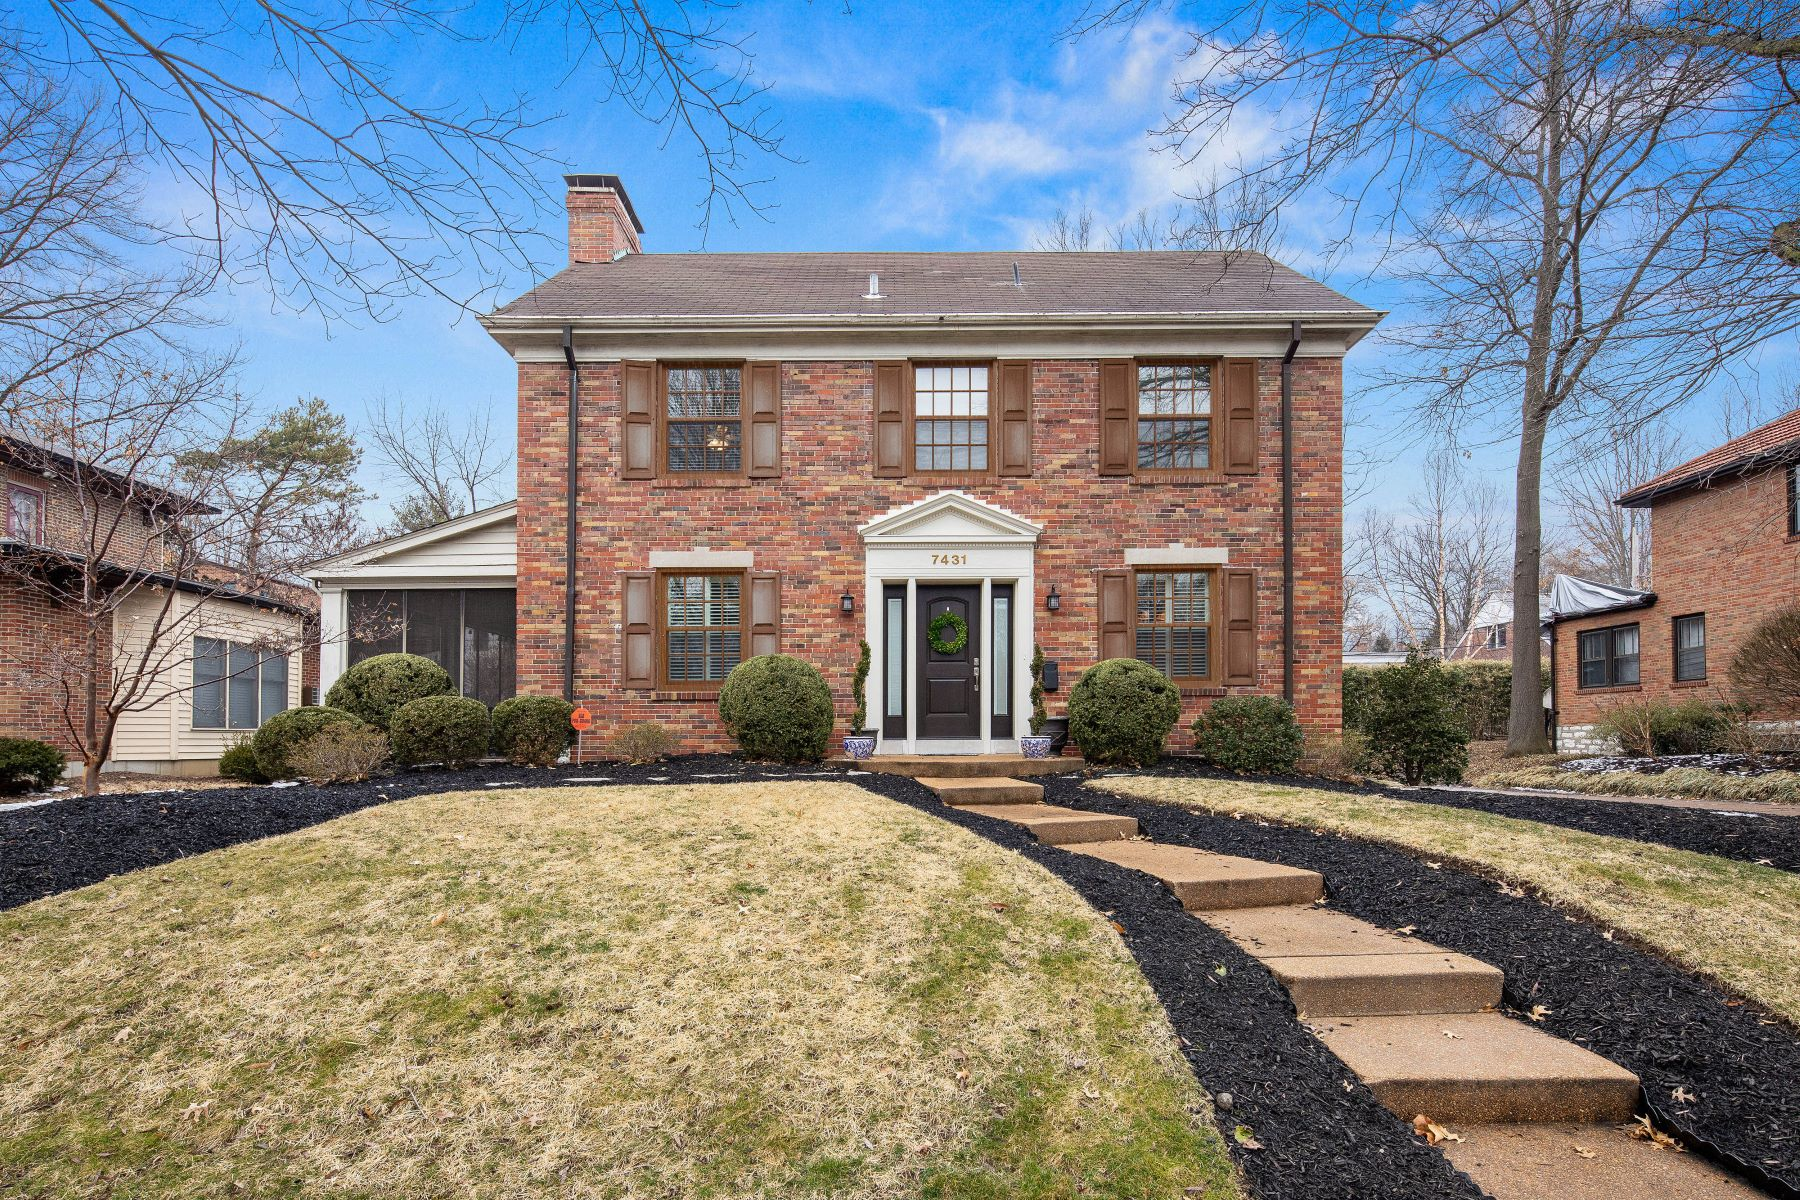 Property for Sale at 7431 York Drive, Clayton, MO 63105 7431 York Drive Clayton, Missouri 63105 United States